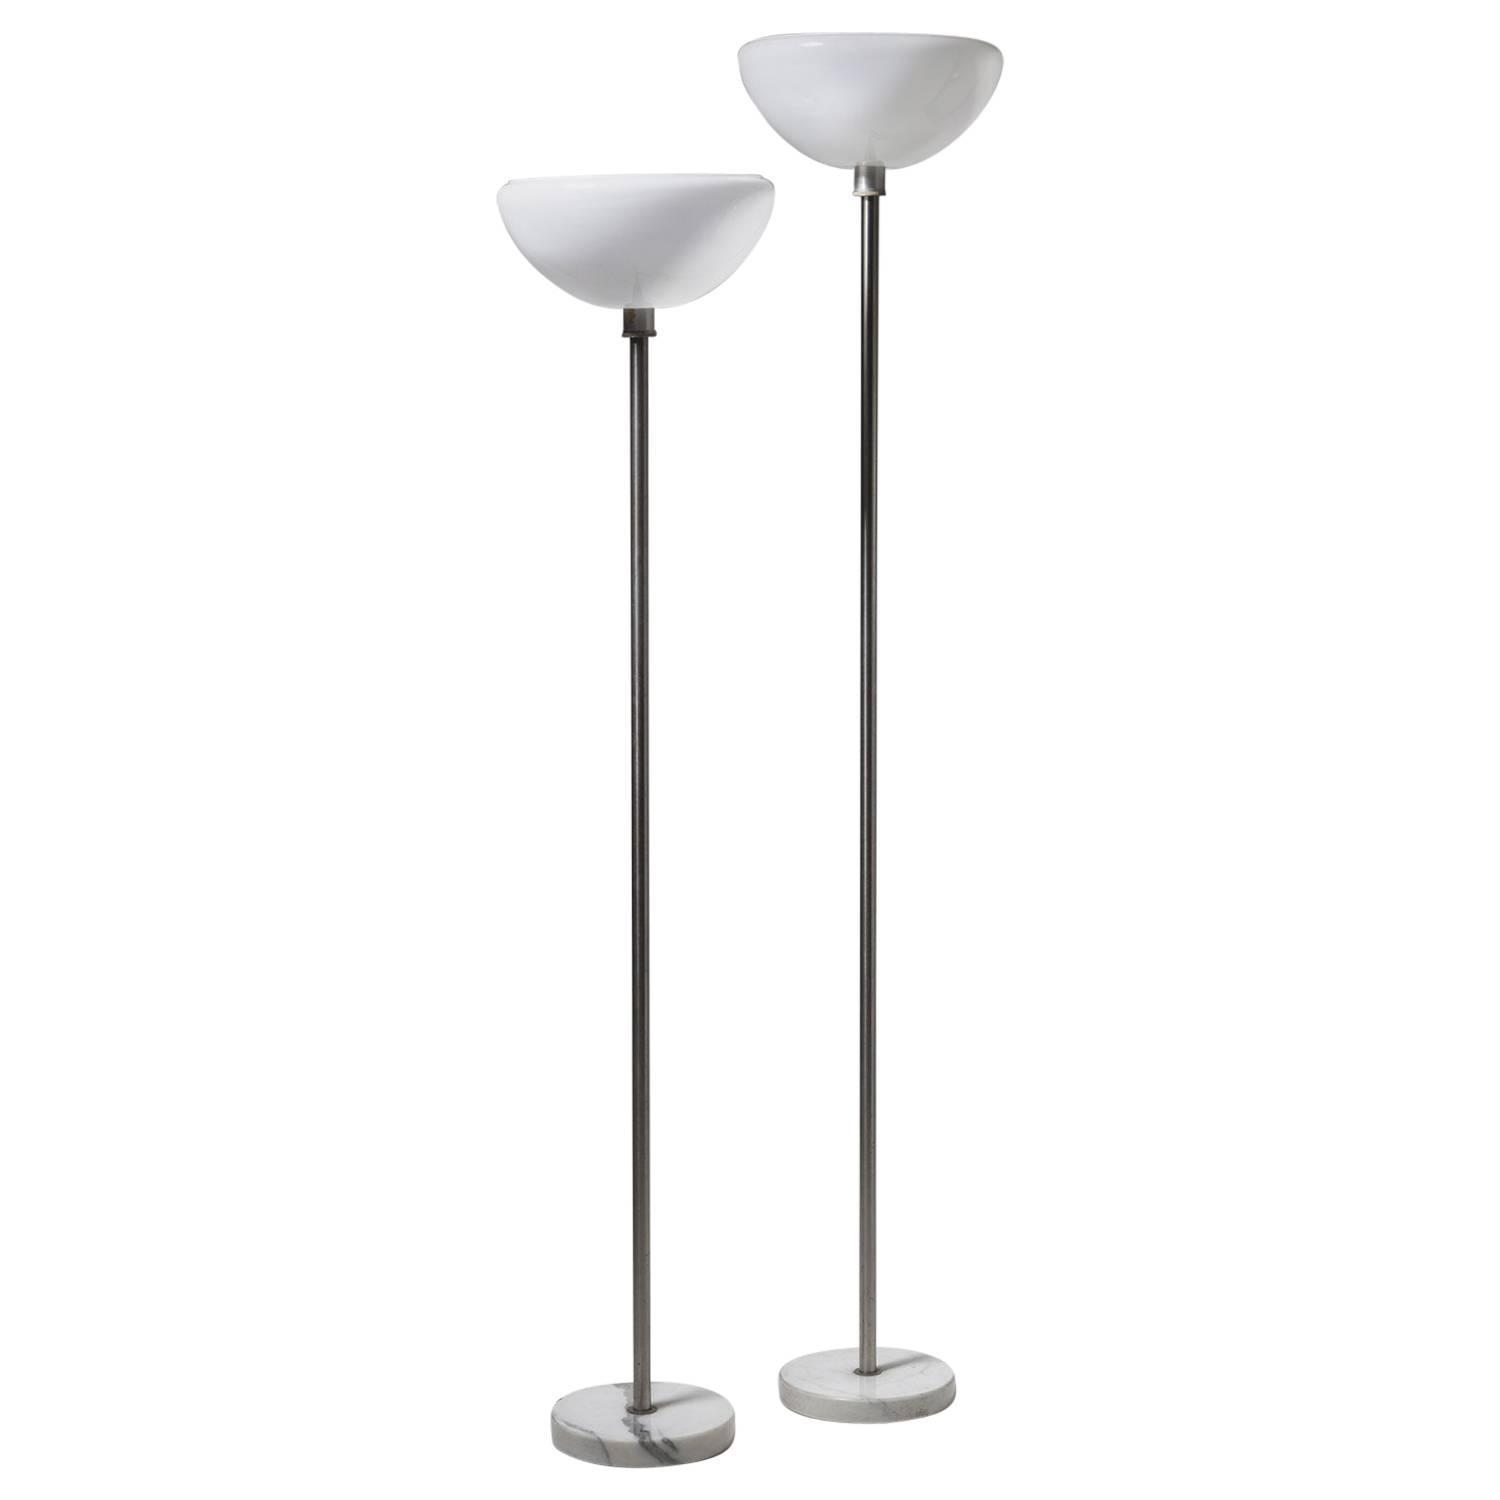 Achille and castiglioni toio floor lamp for sale at 1stdibs pair of papavero floor lamps by castiglioni for flos aloadofball Gallery